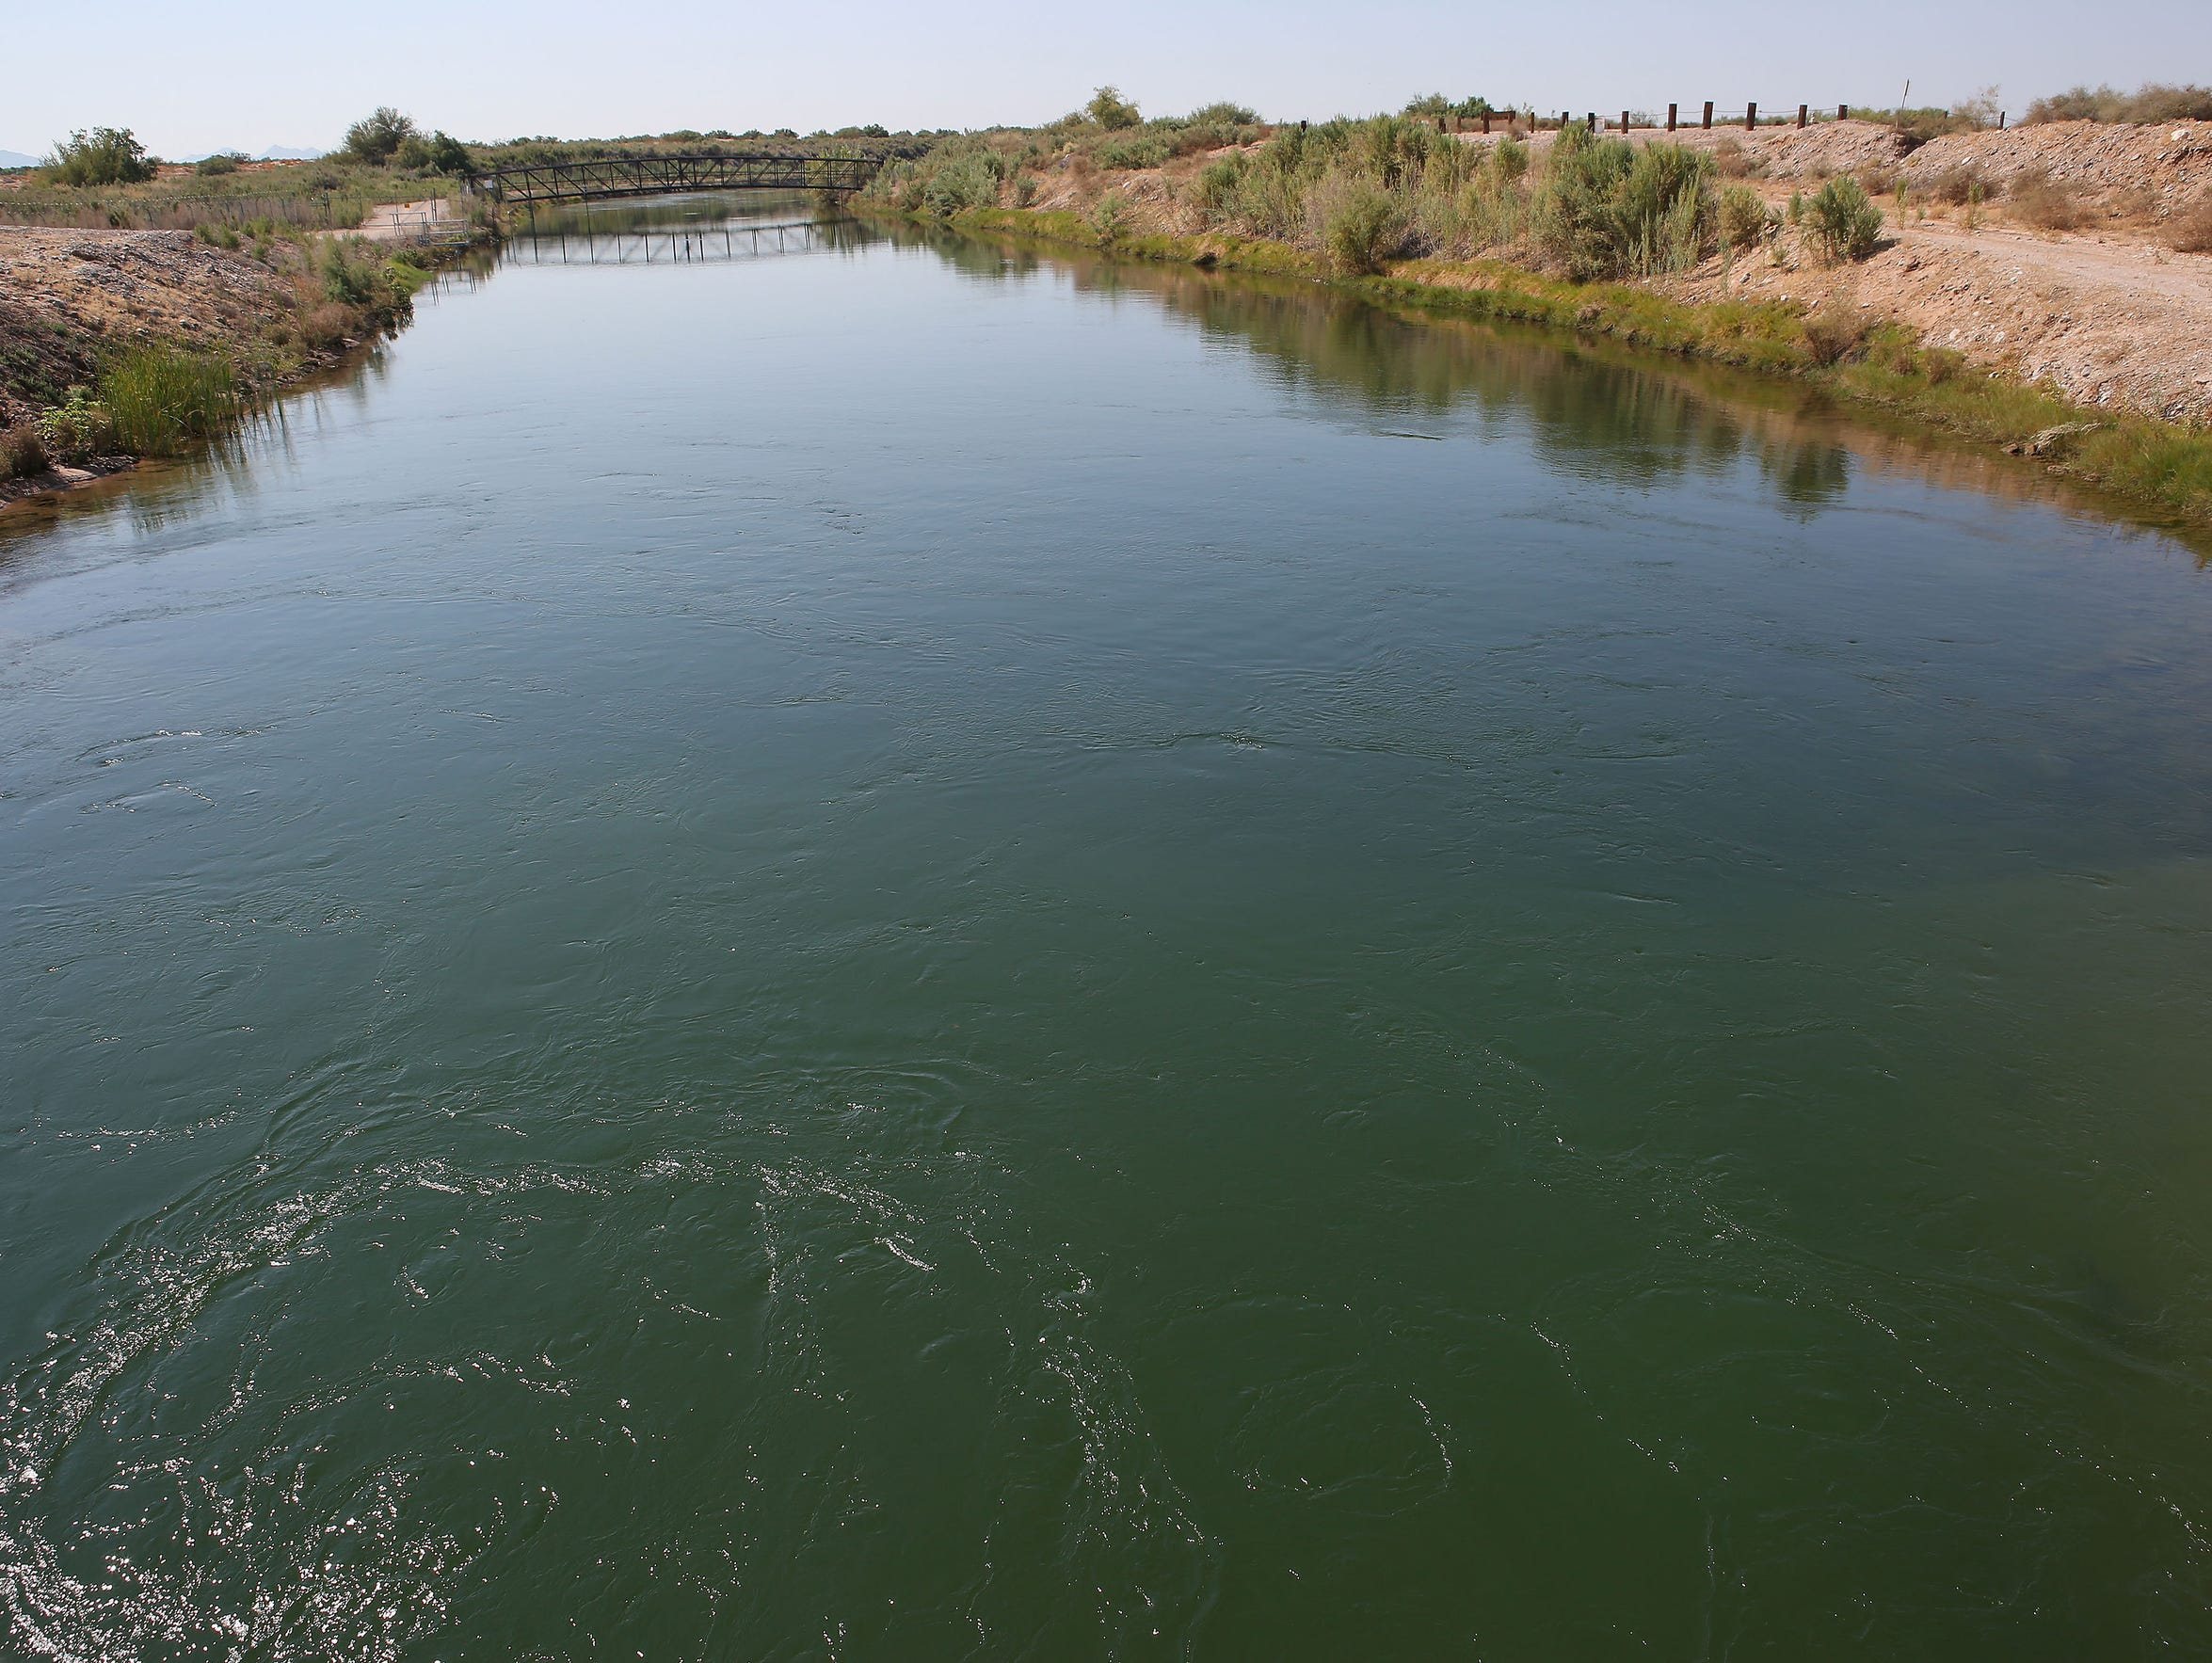 Water diverted from the Colorado River flows out of